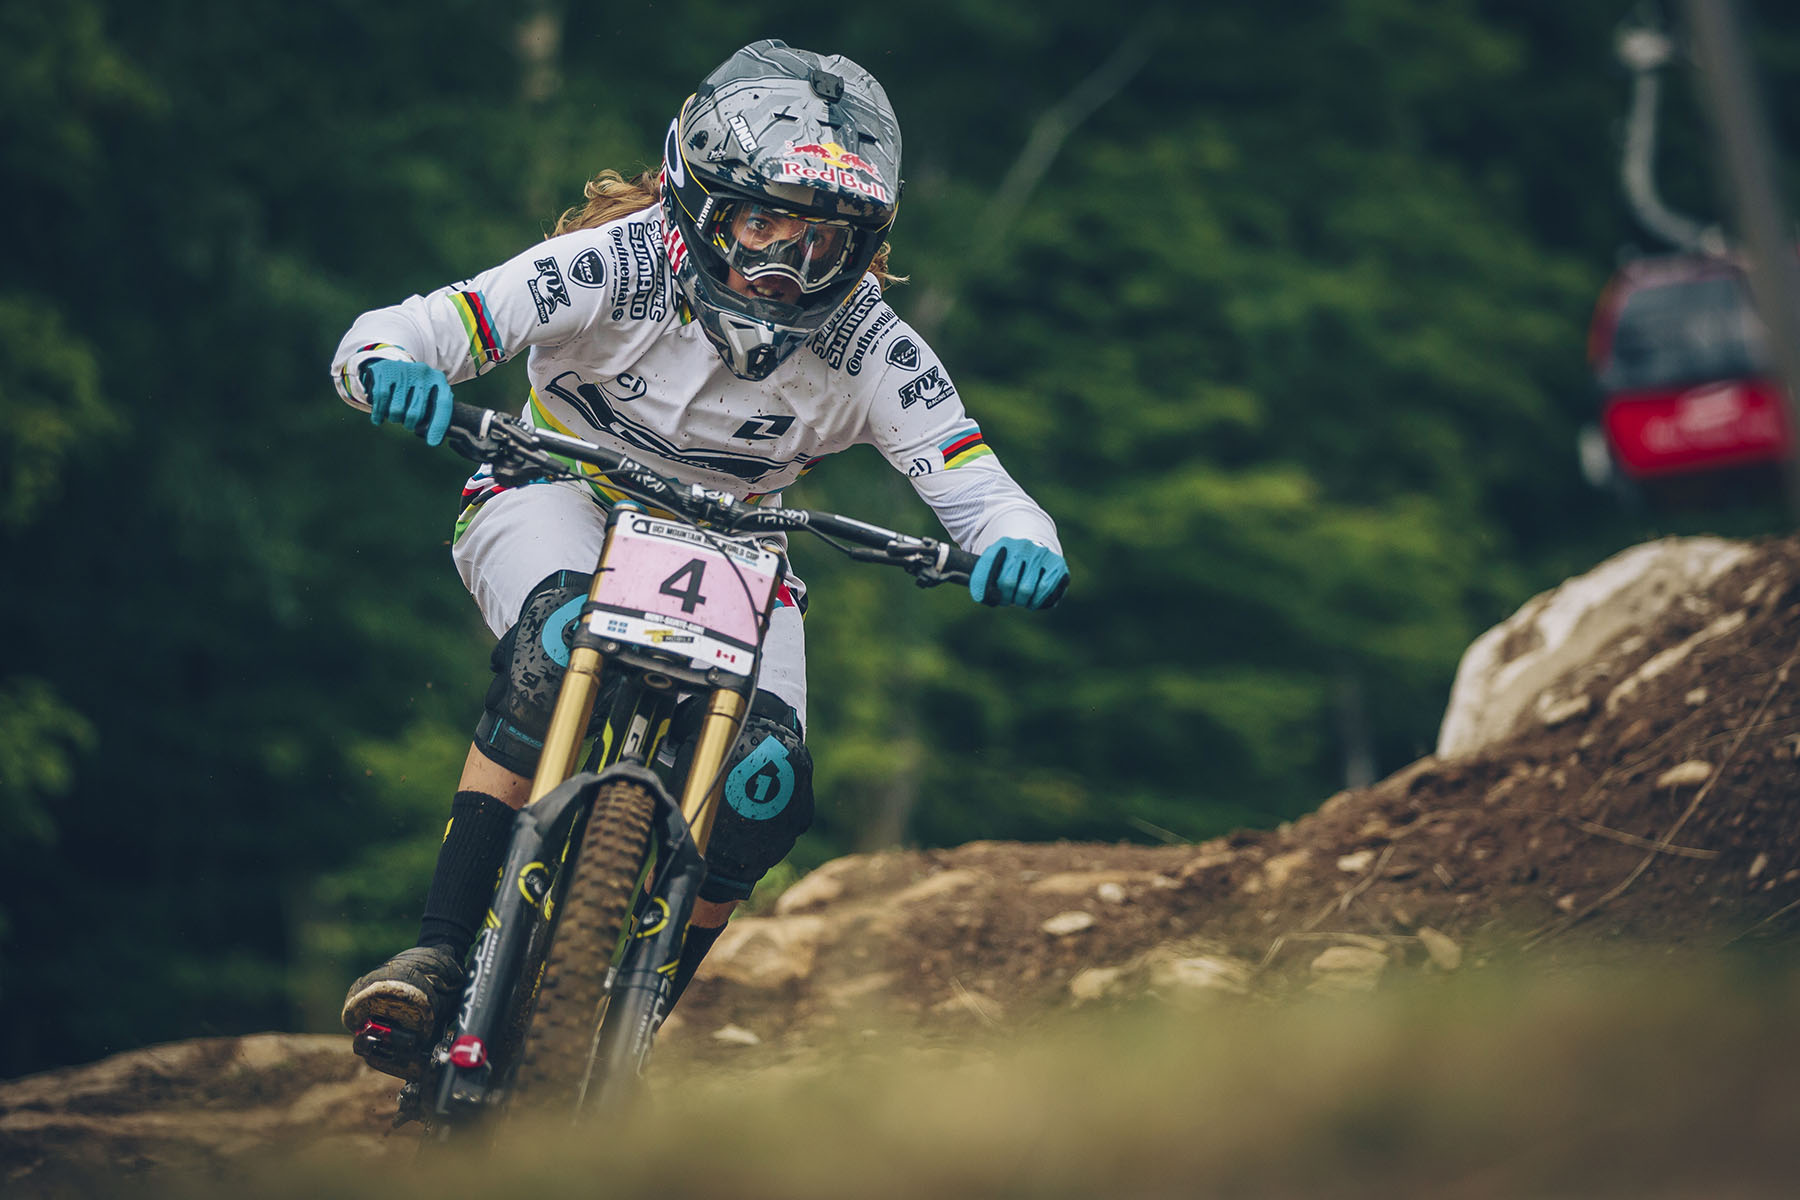 Rachel Atherton was a little off the pace in qualys yesterday which set her back to 3rd place. A smooth consistent run saw Rachel cross the line a huge 15 seconds up on hot seat rider Tahnee, but with Ragot and Manon still to come was it enough to fend them off.